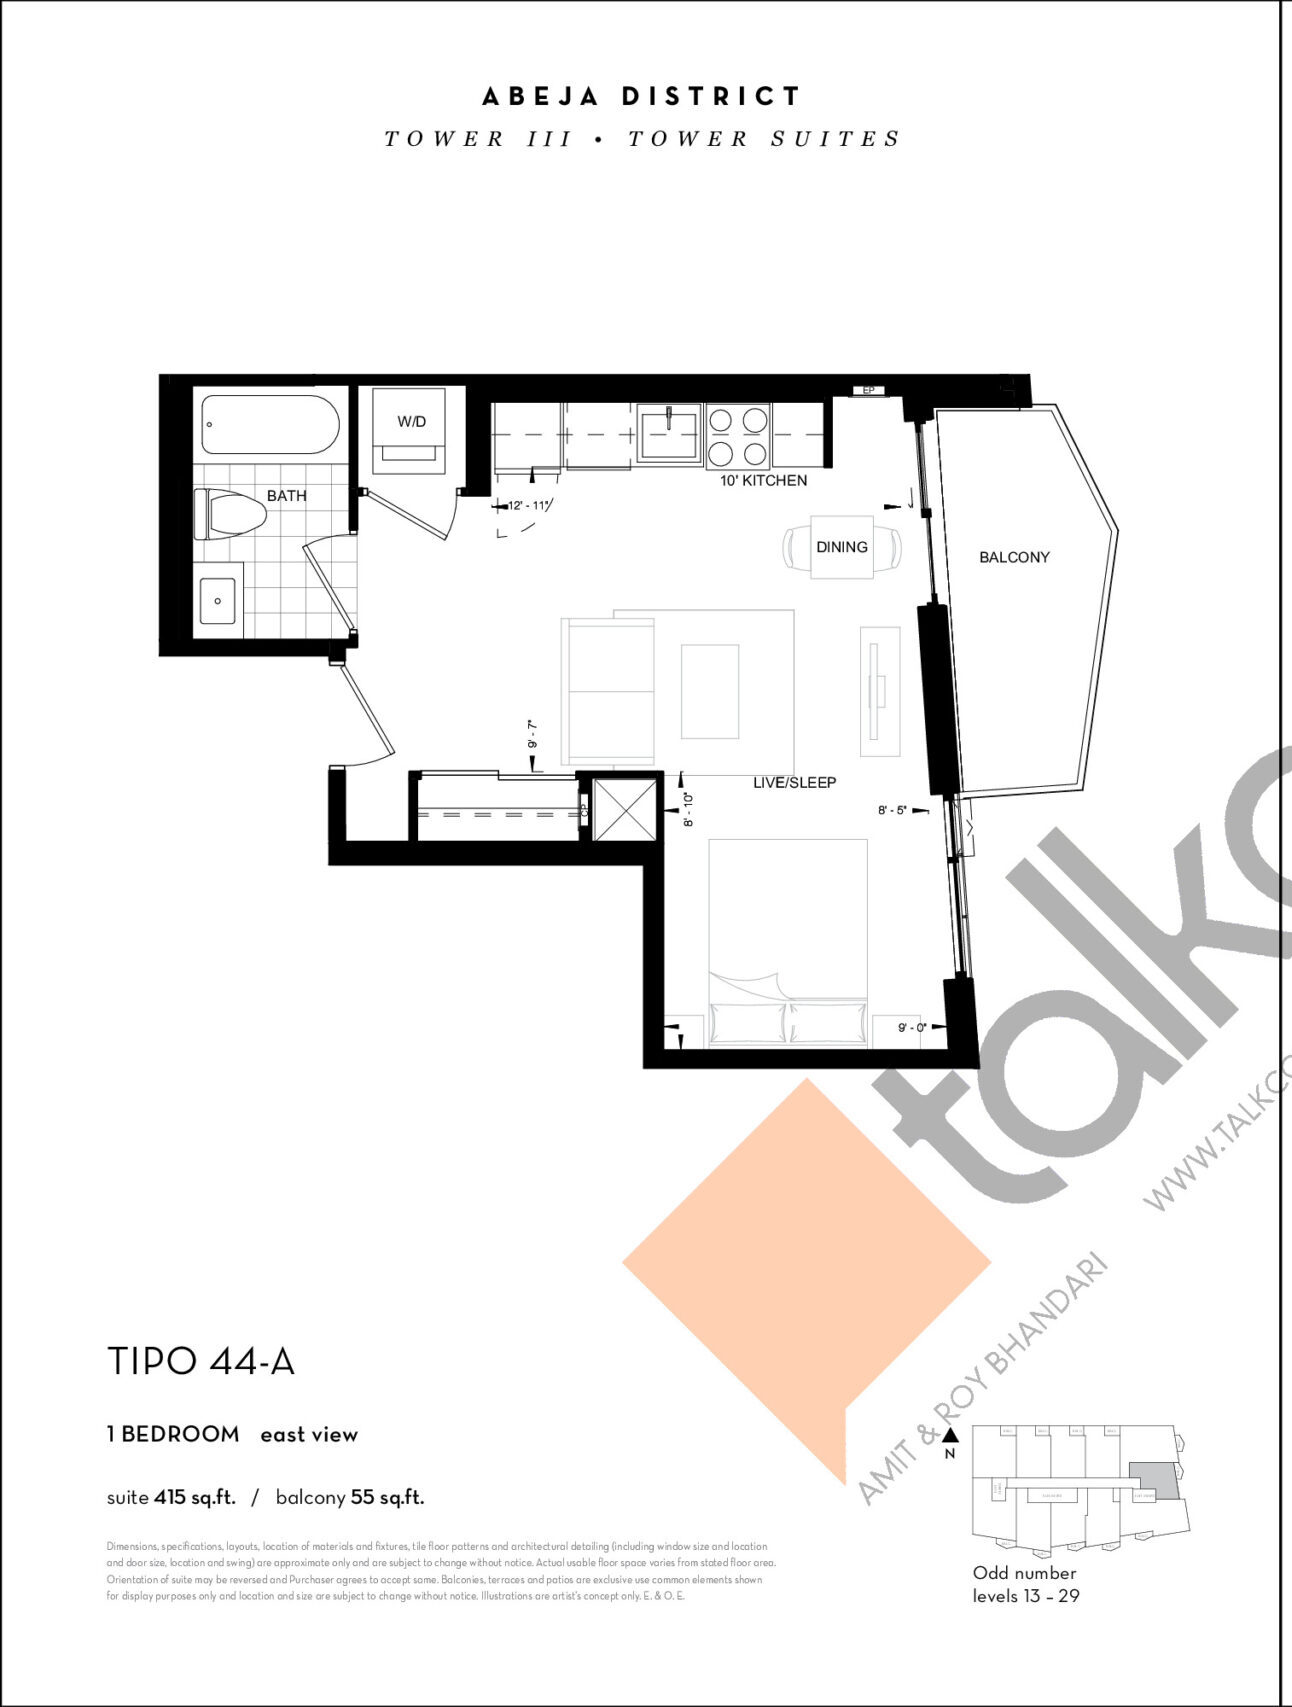 TIPO 44-A Floor Plan at Abeja District Condos Tower 3 - 415 sq.ft